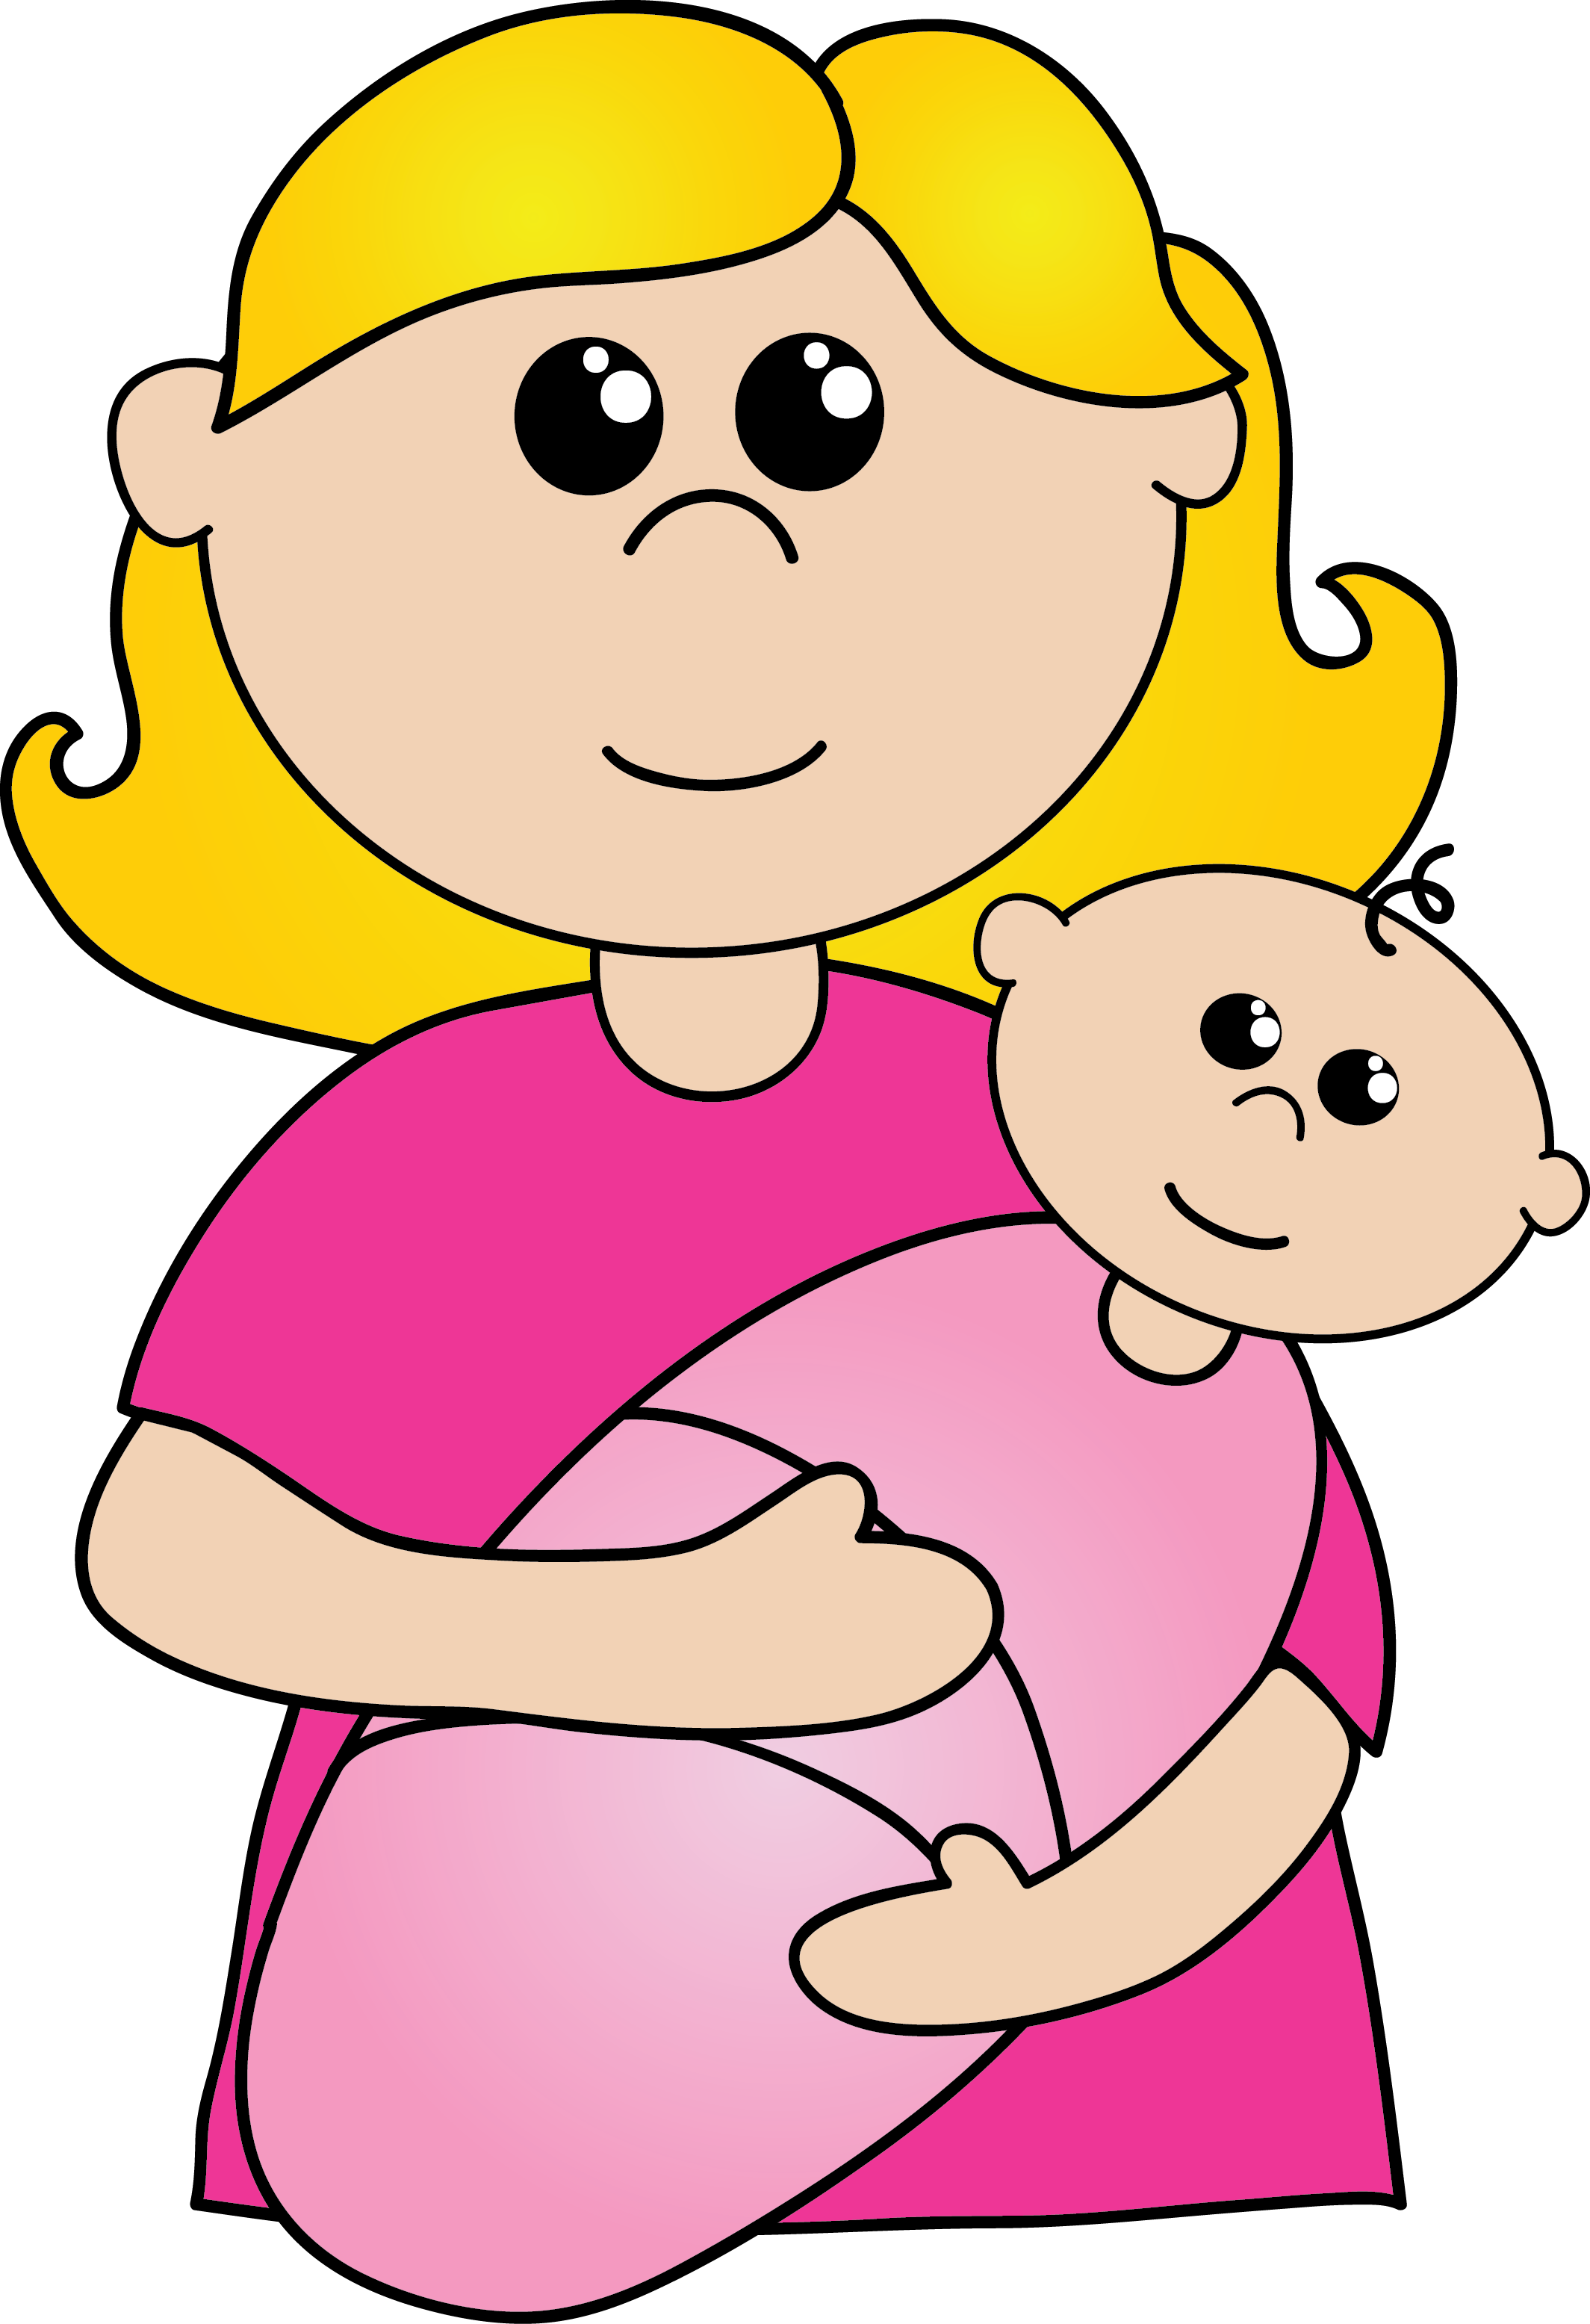 Free Mom Clipart Png, Download Free Clip Art, Free Clip Art.